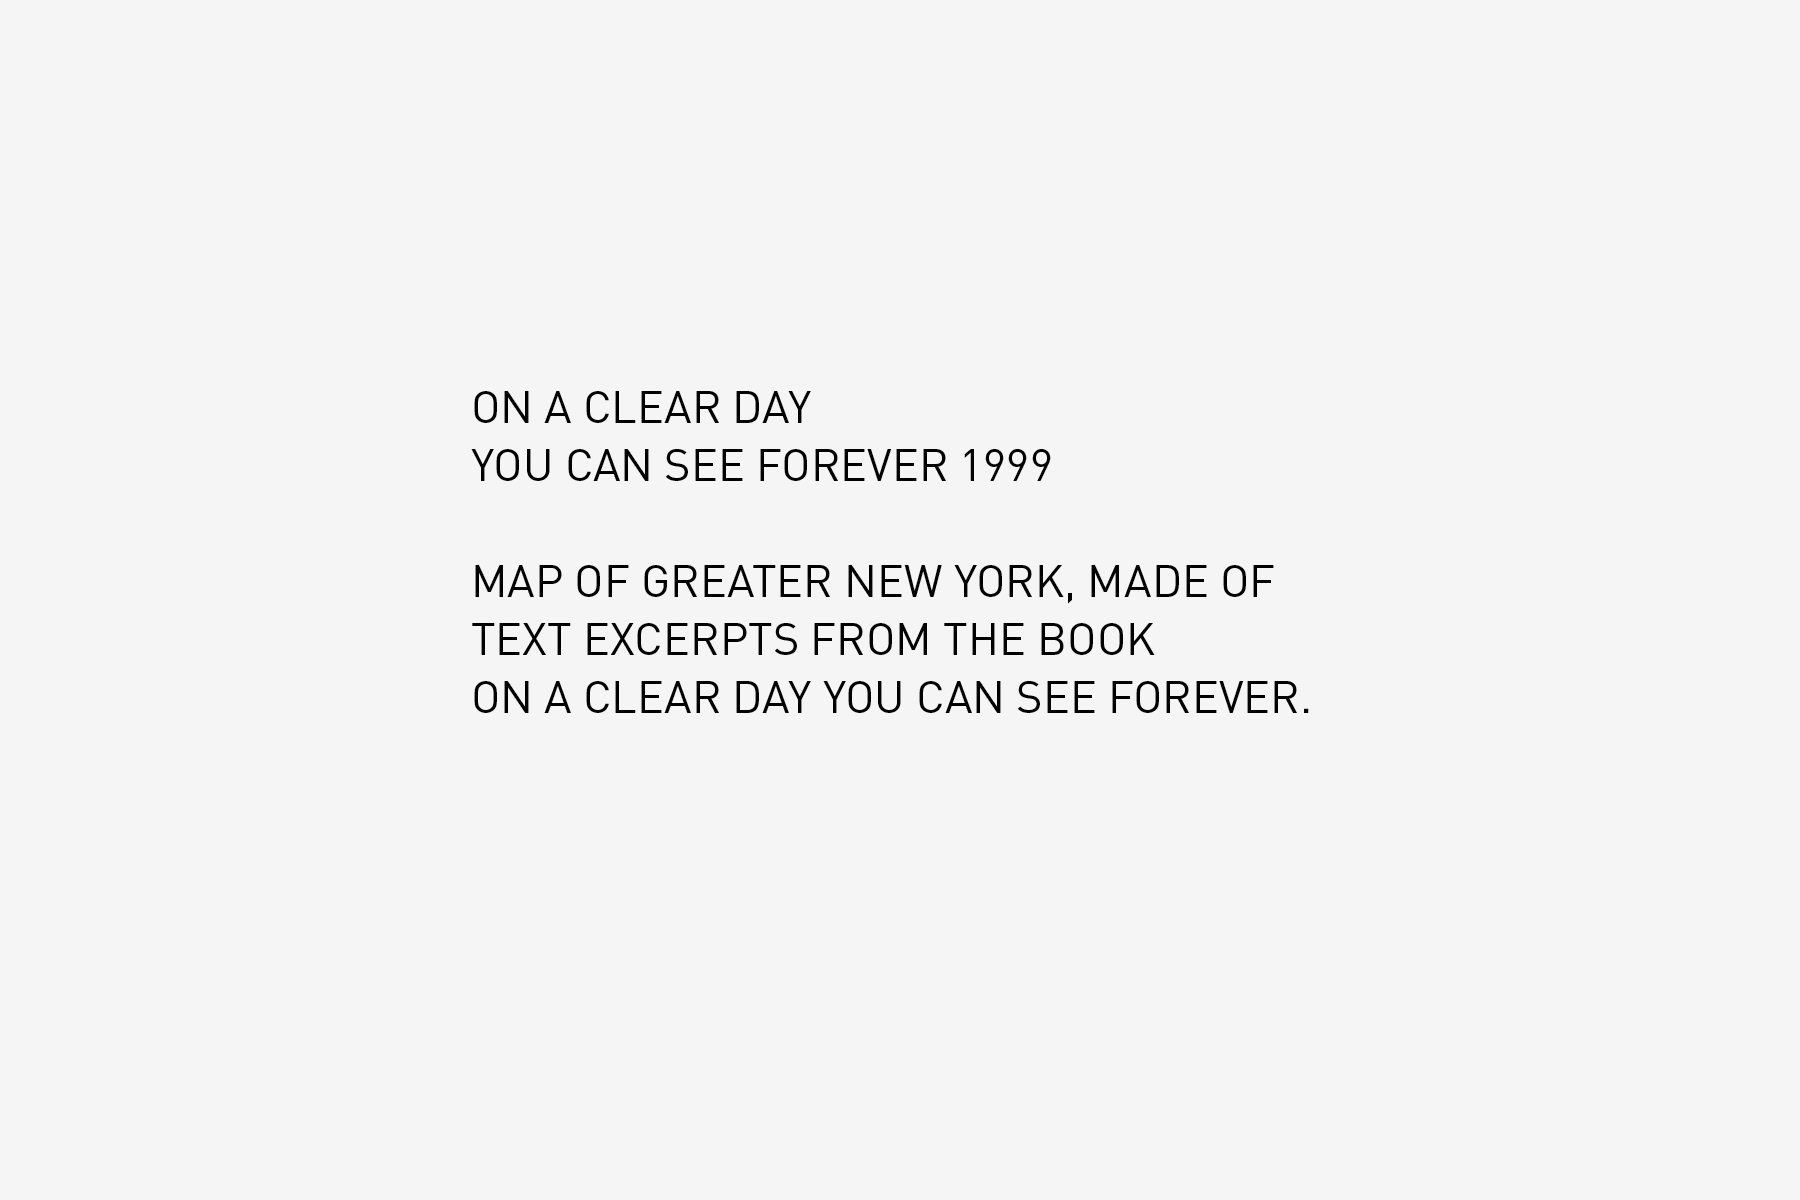 JAN ROTHUIZEN-On a clear day you can see forever